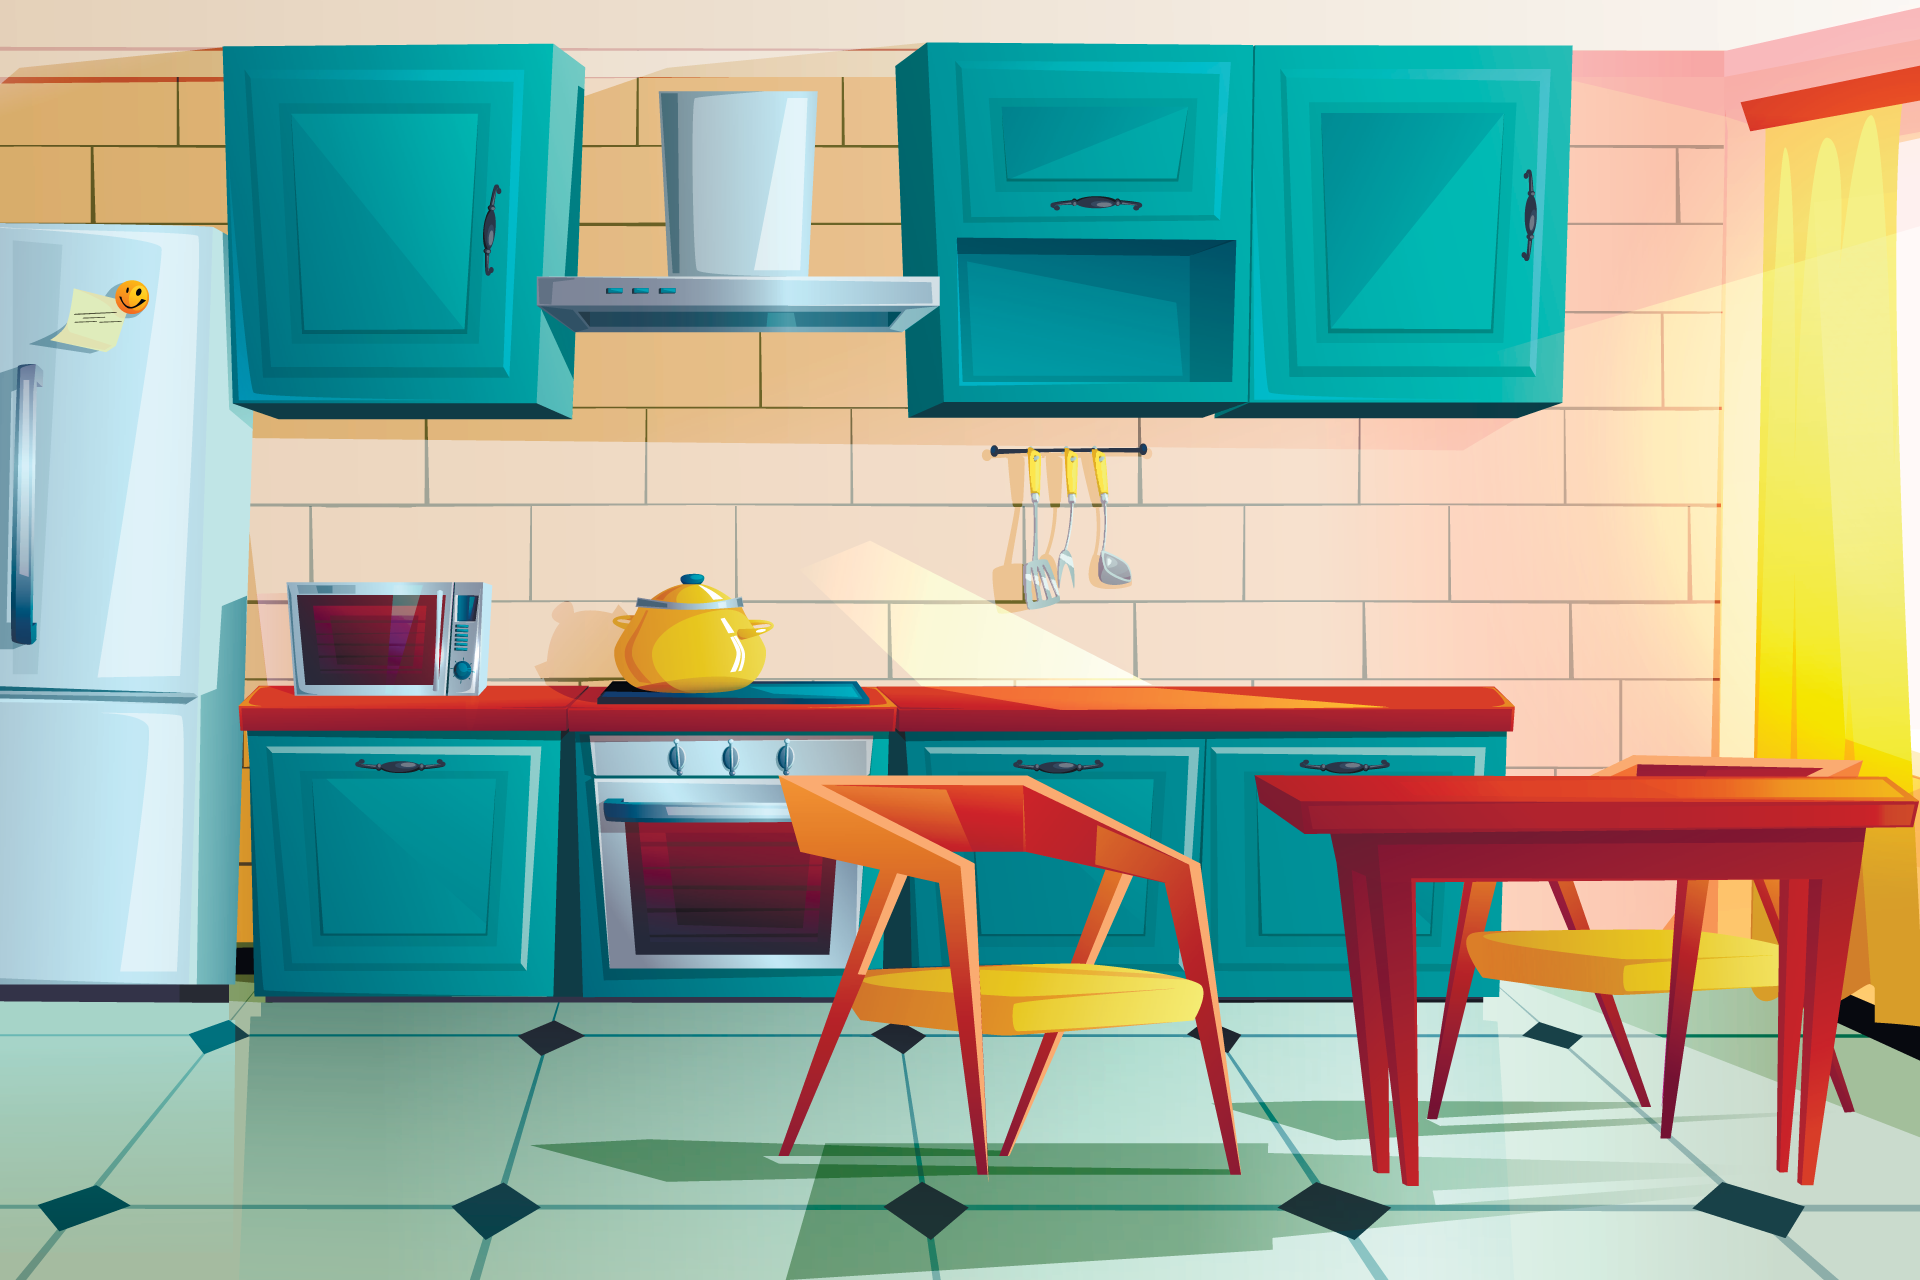 Illustration of an empty kitchen with table and chairs